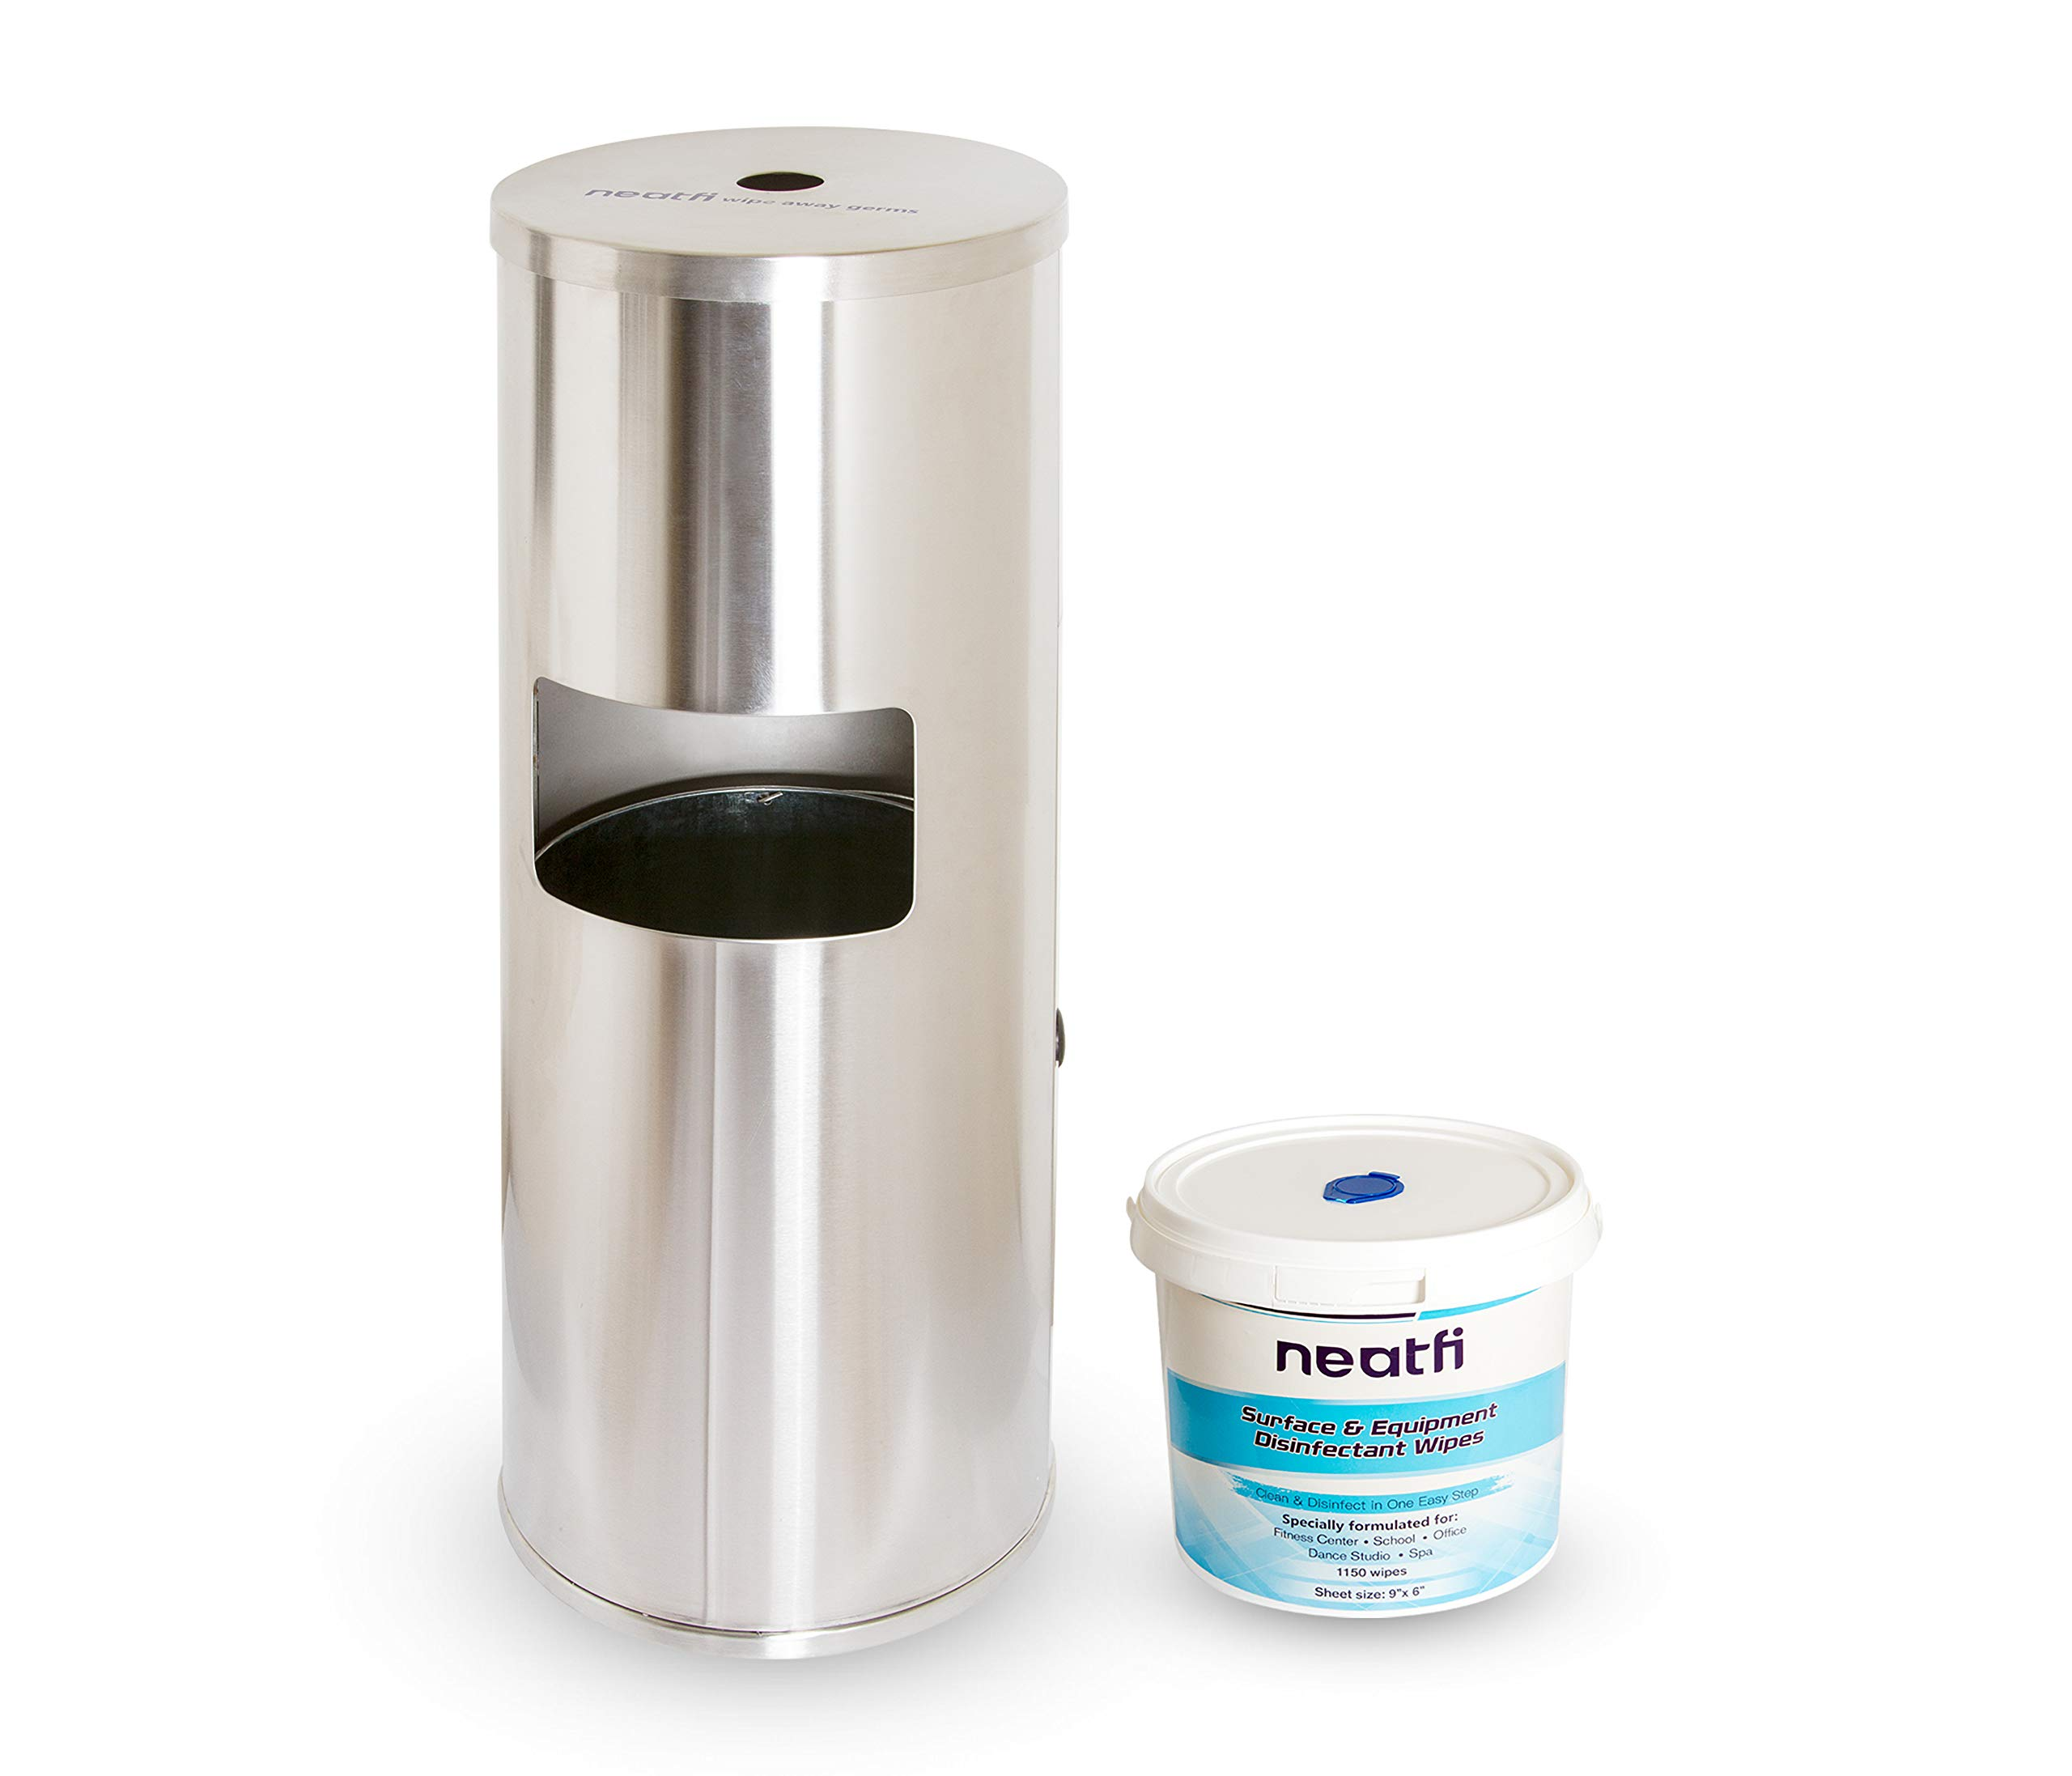 NeatFi Floor Standing Stainless Steel Gym Wipe Dispenser with High Capacity Built-in Trash Can and Easy Back Door Access + Wipe Holding Bucket by Neatfi (Image #1)